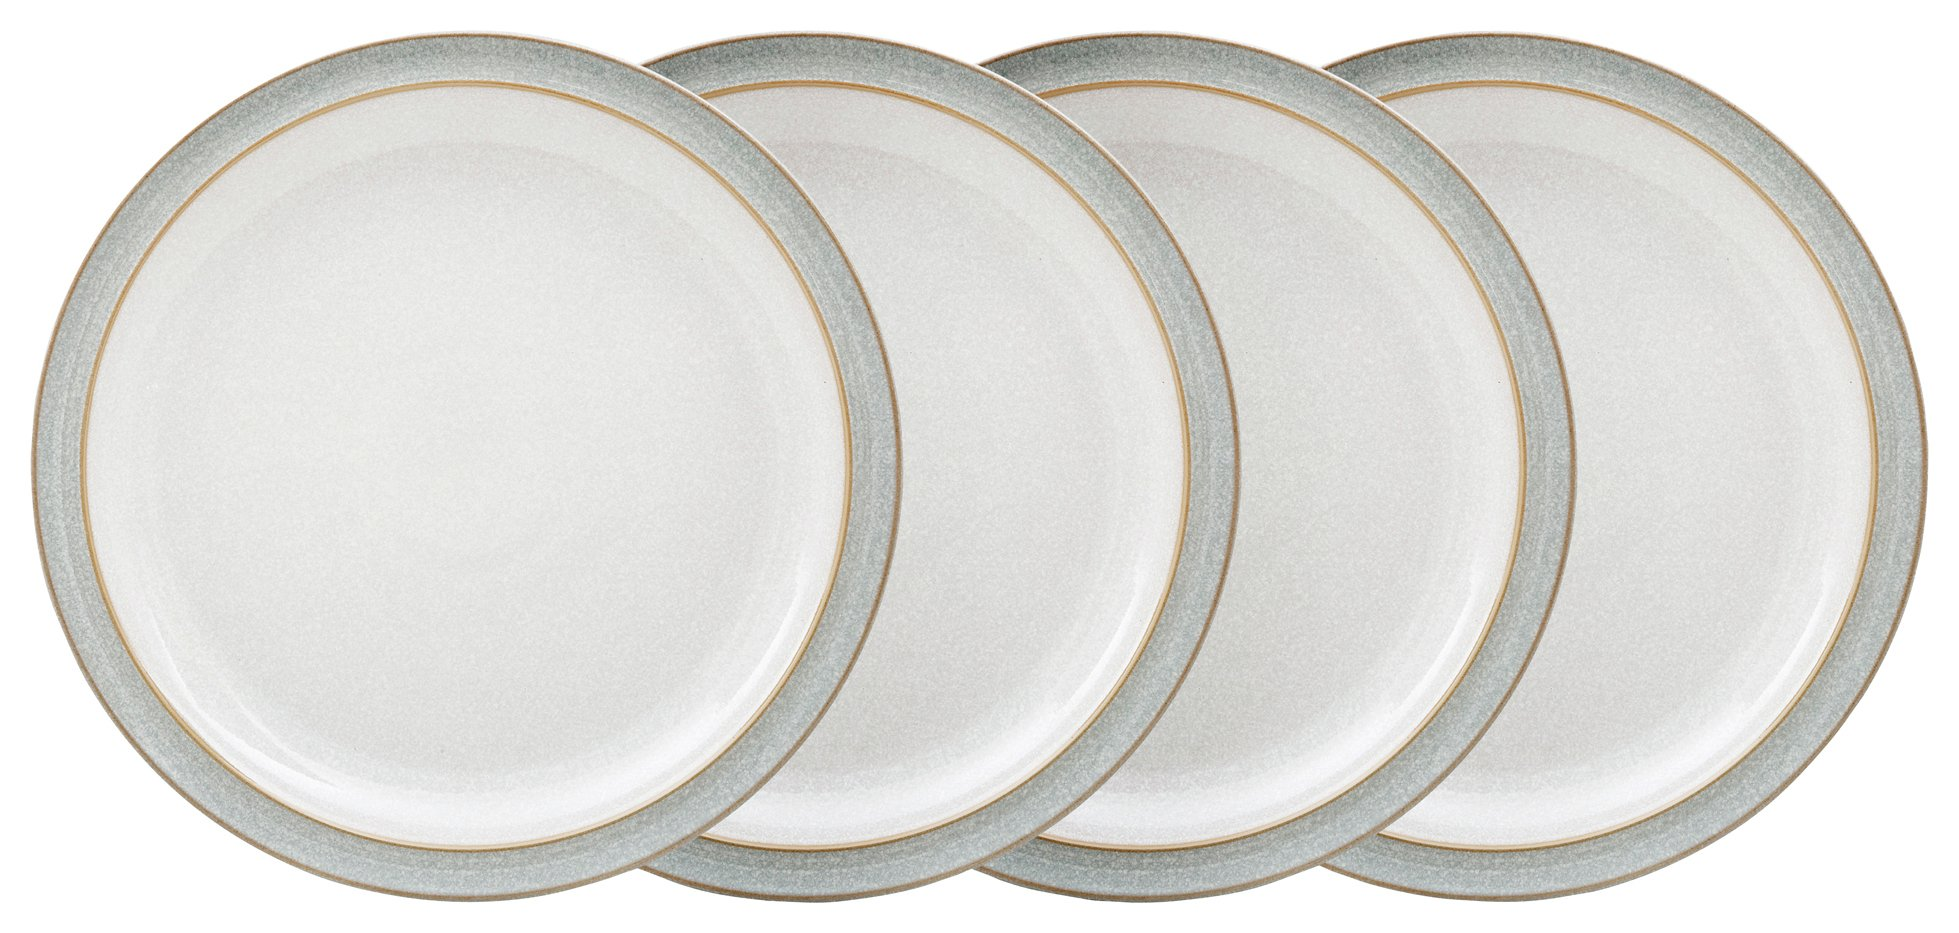 Image of Denby - Elements Set of 4 Dinner Plates - Light Grey